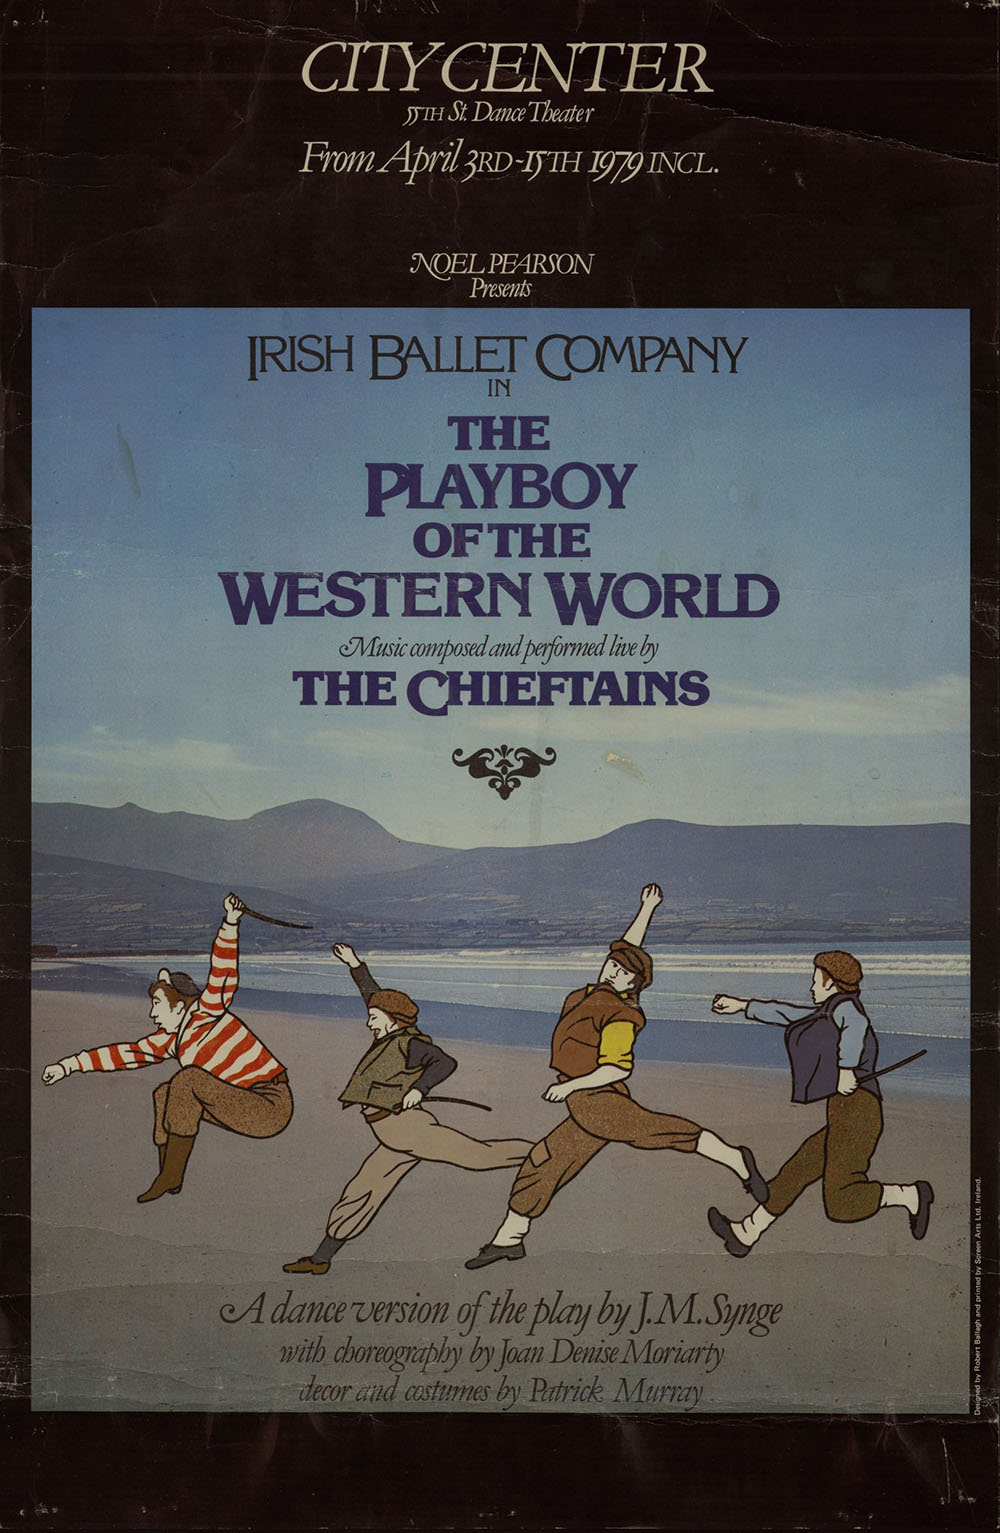 Poster advertising The Playboy of the Western World by the Irish Ballet Company, featuring artwork of four men dancing on the beach